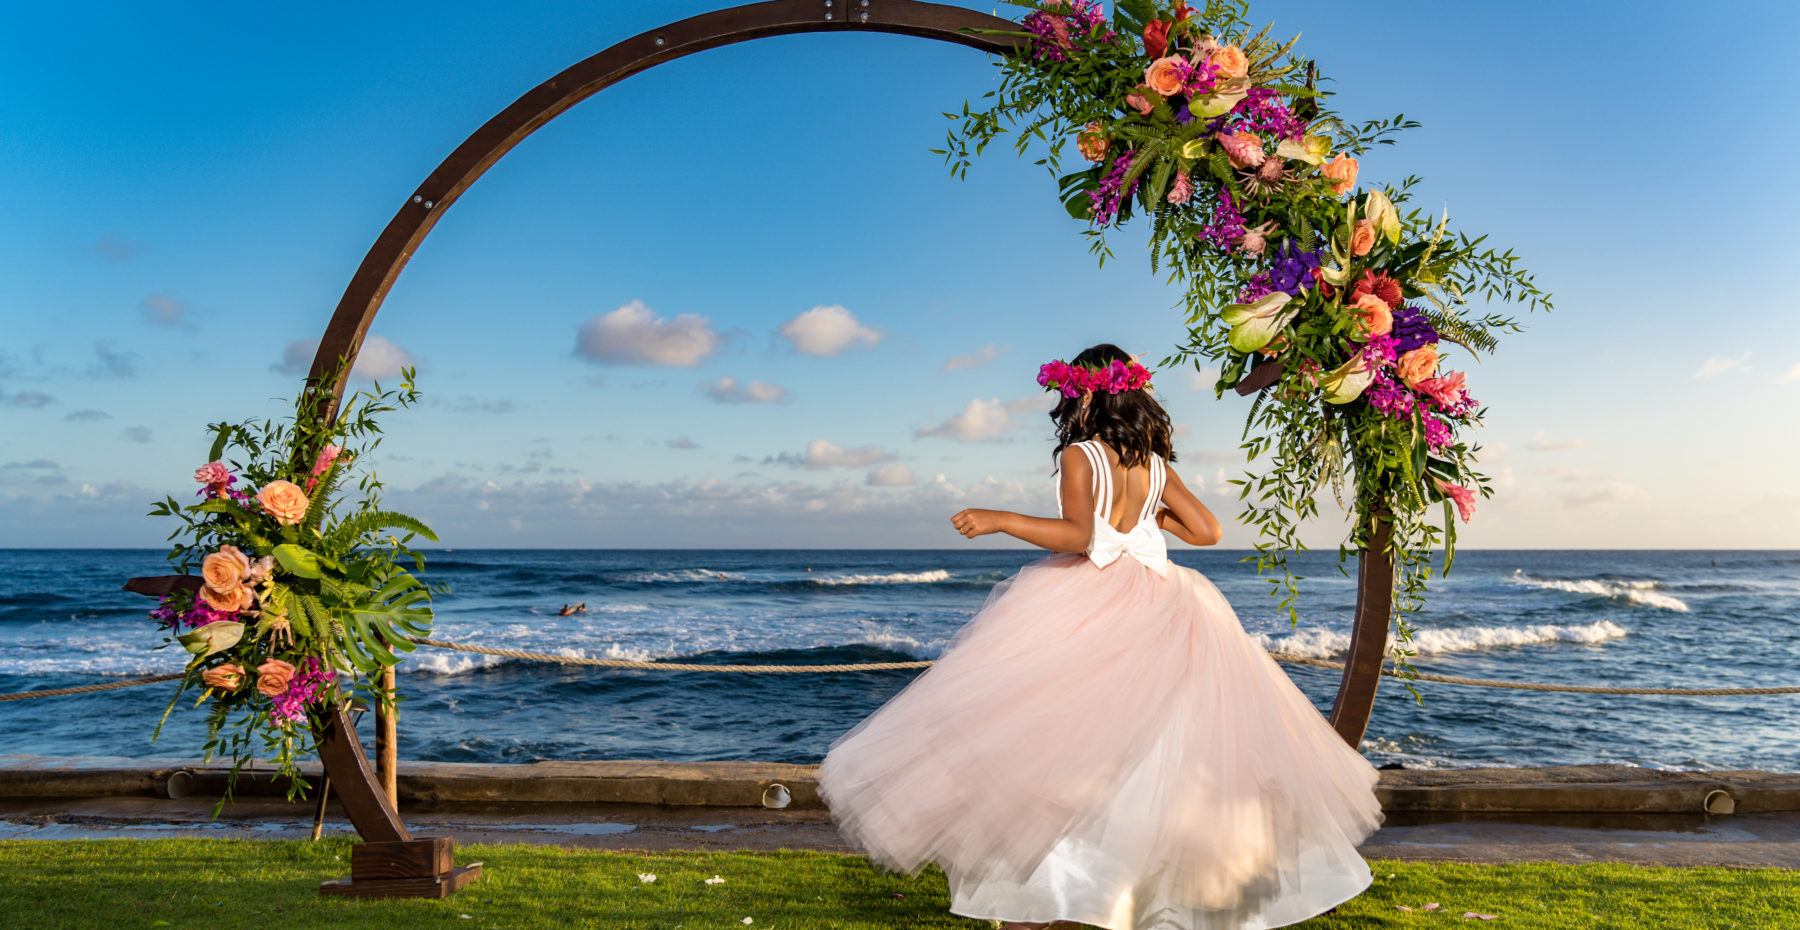 Kauai Flower girl and circle arch at an oceanfront private venue